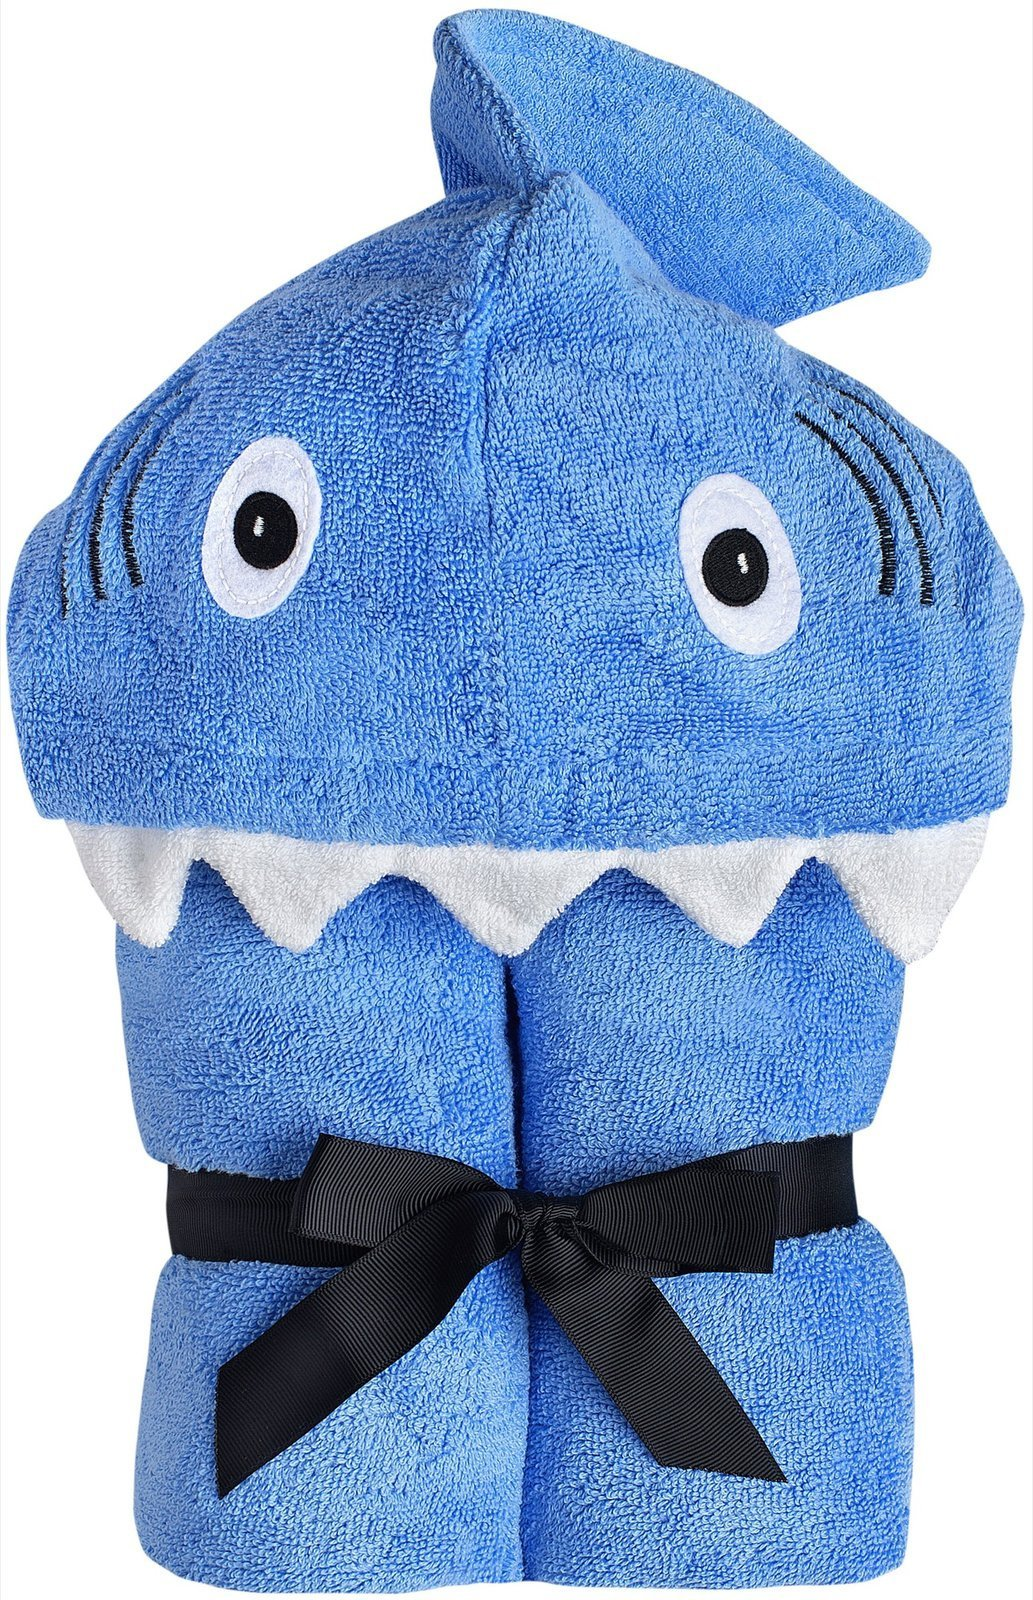 Yikes Twins Child Hooded Towel - Blue Shark by Yikes Twins